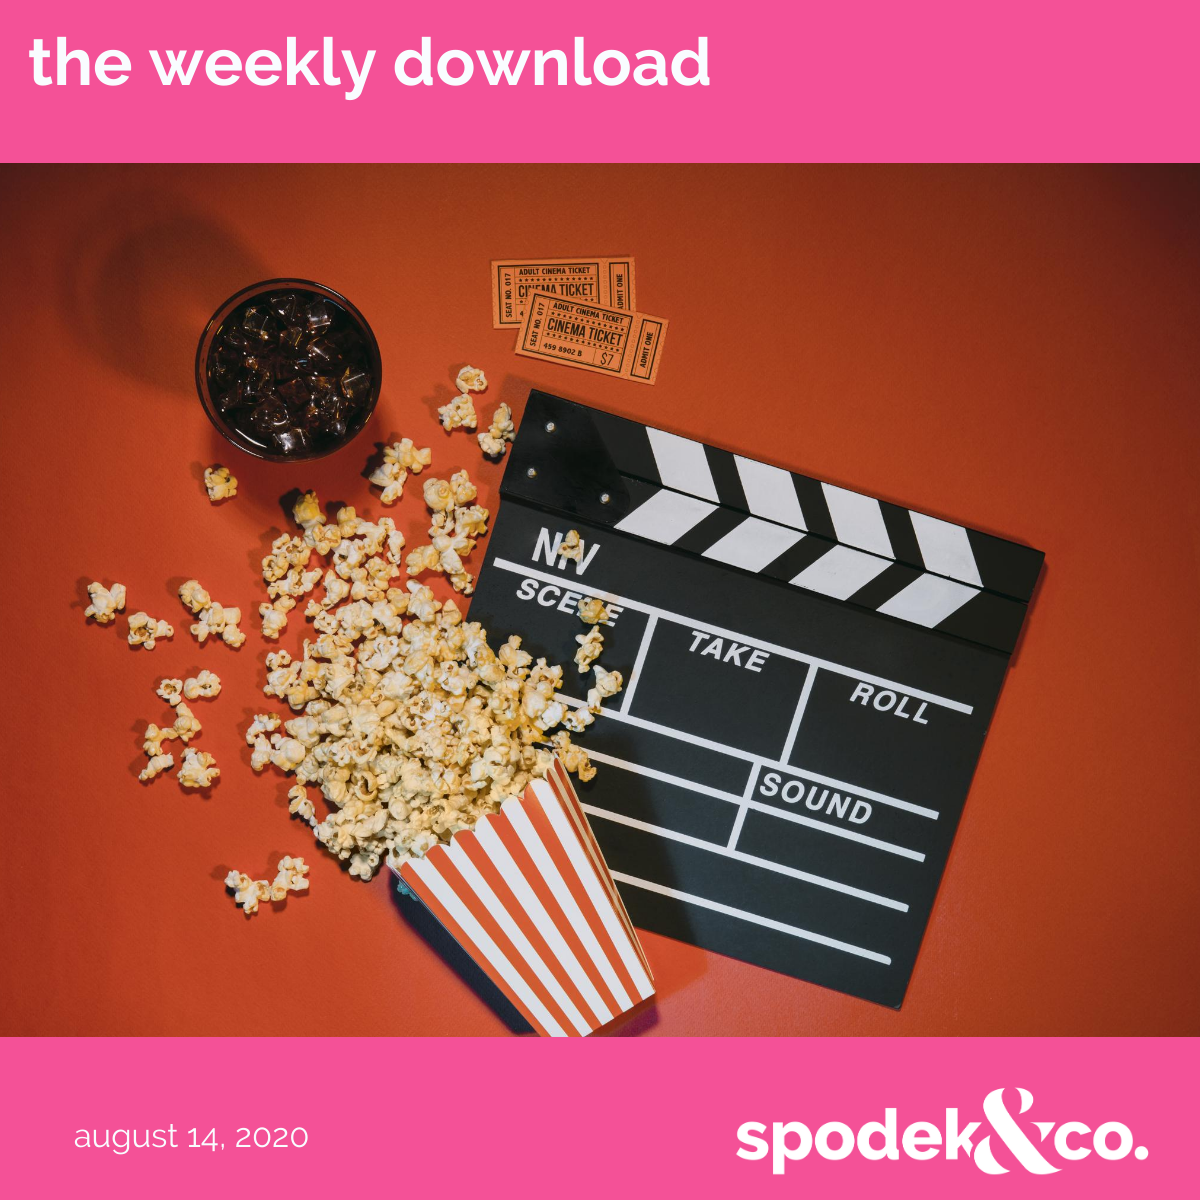 The Weekly Download – August 14, 2020